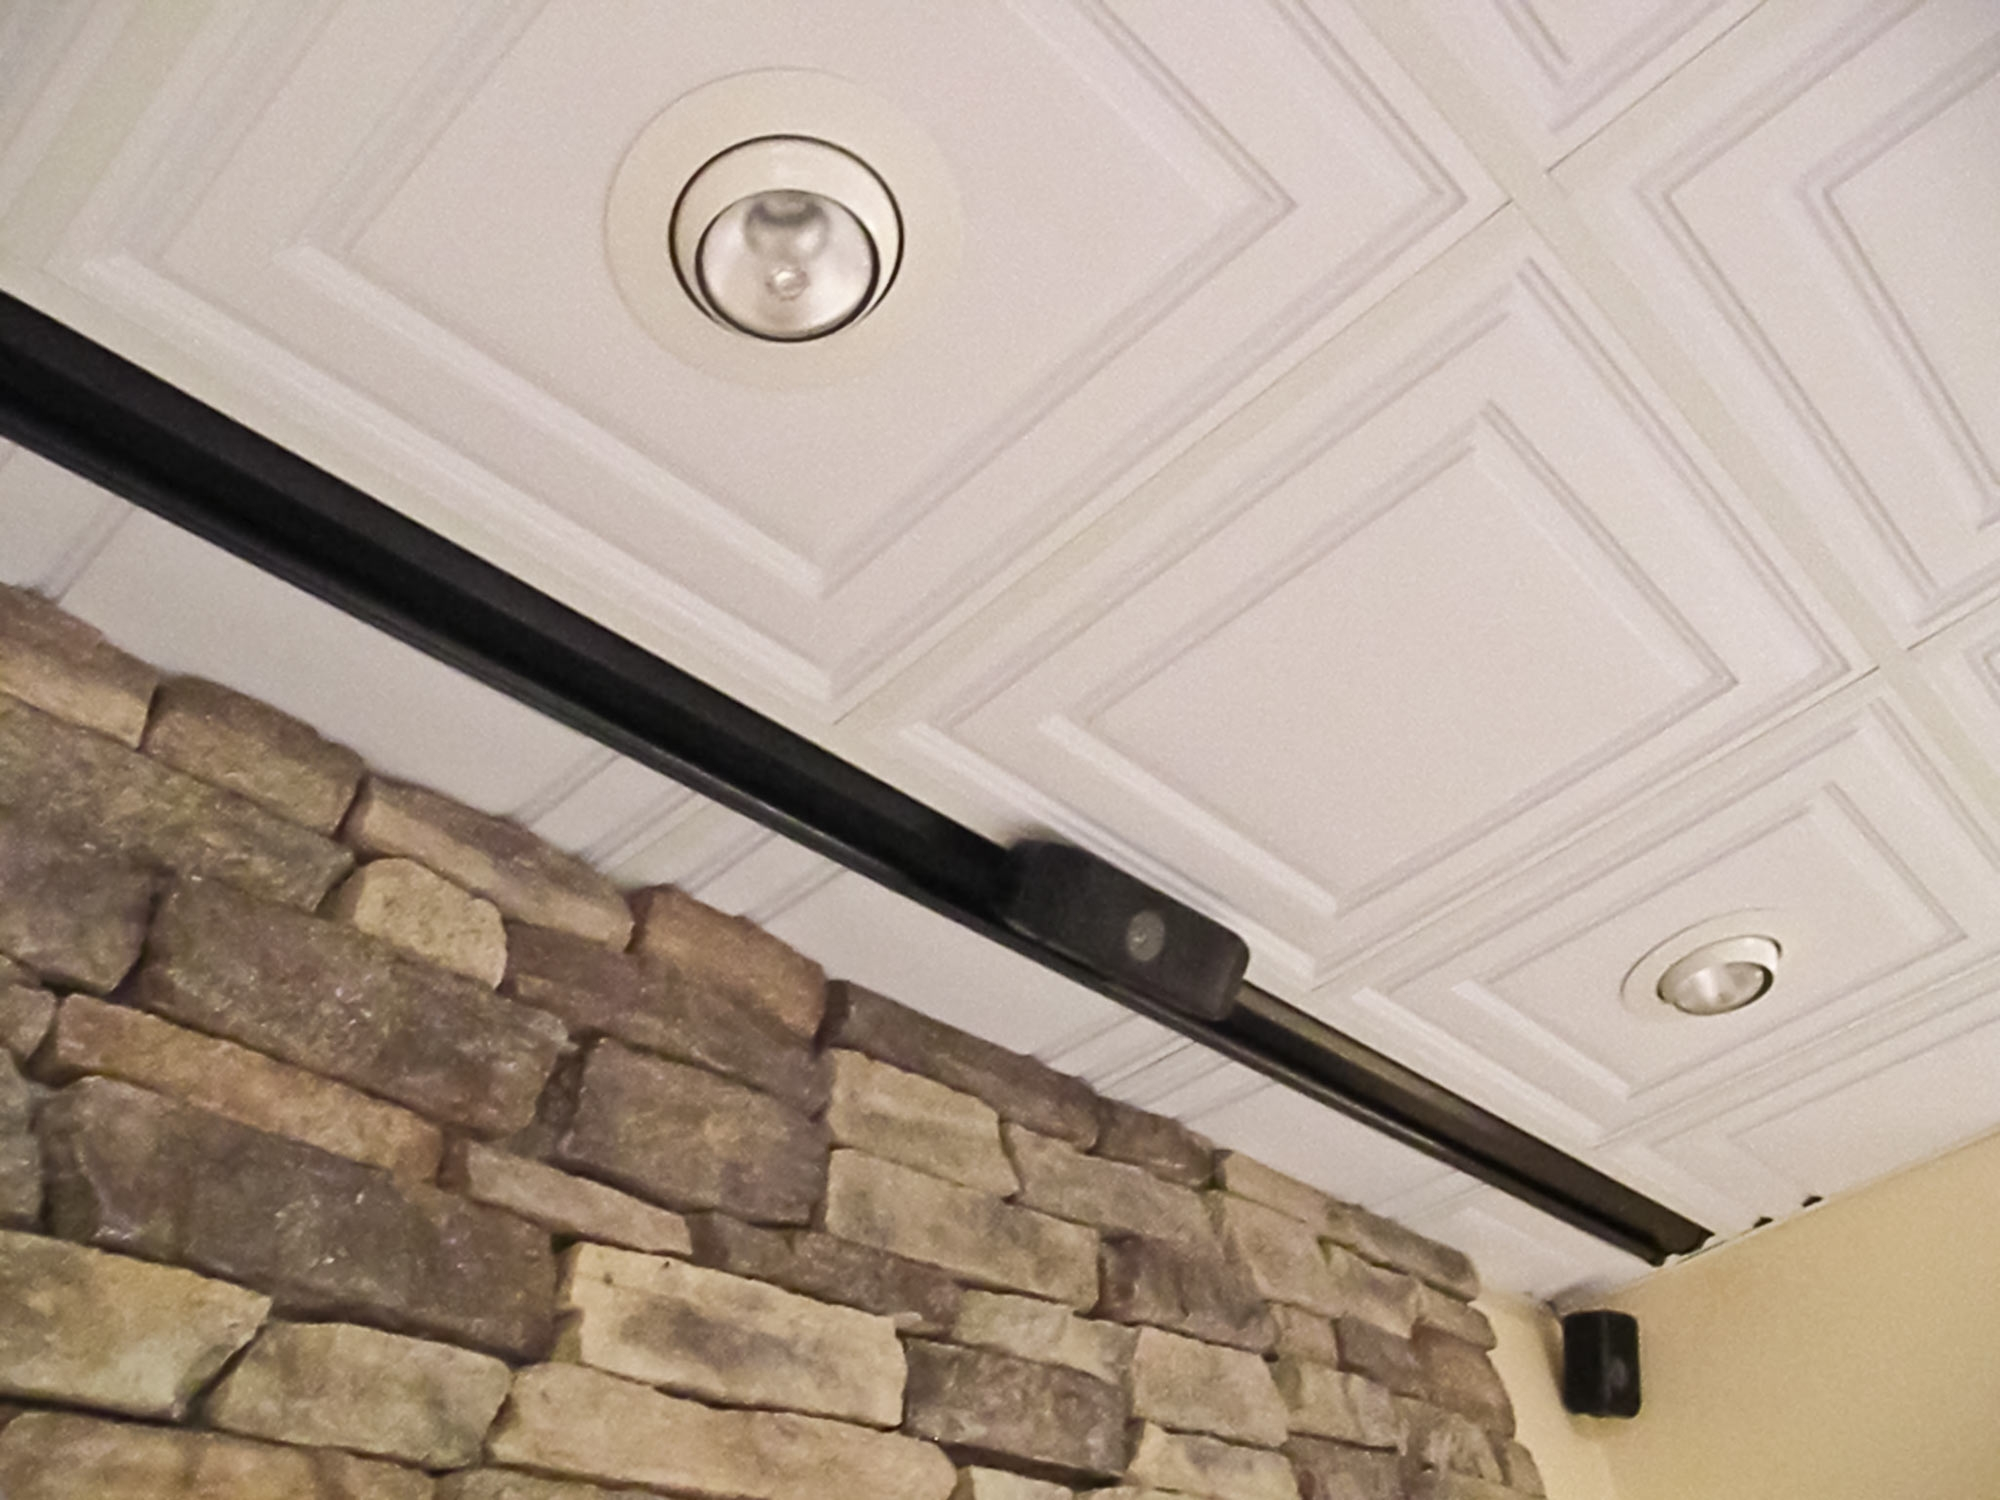 Recessed Ceiling Tiles Cutting